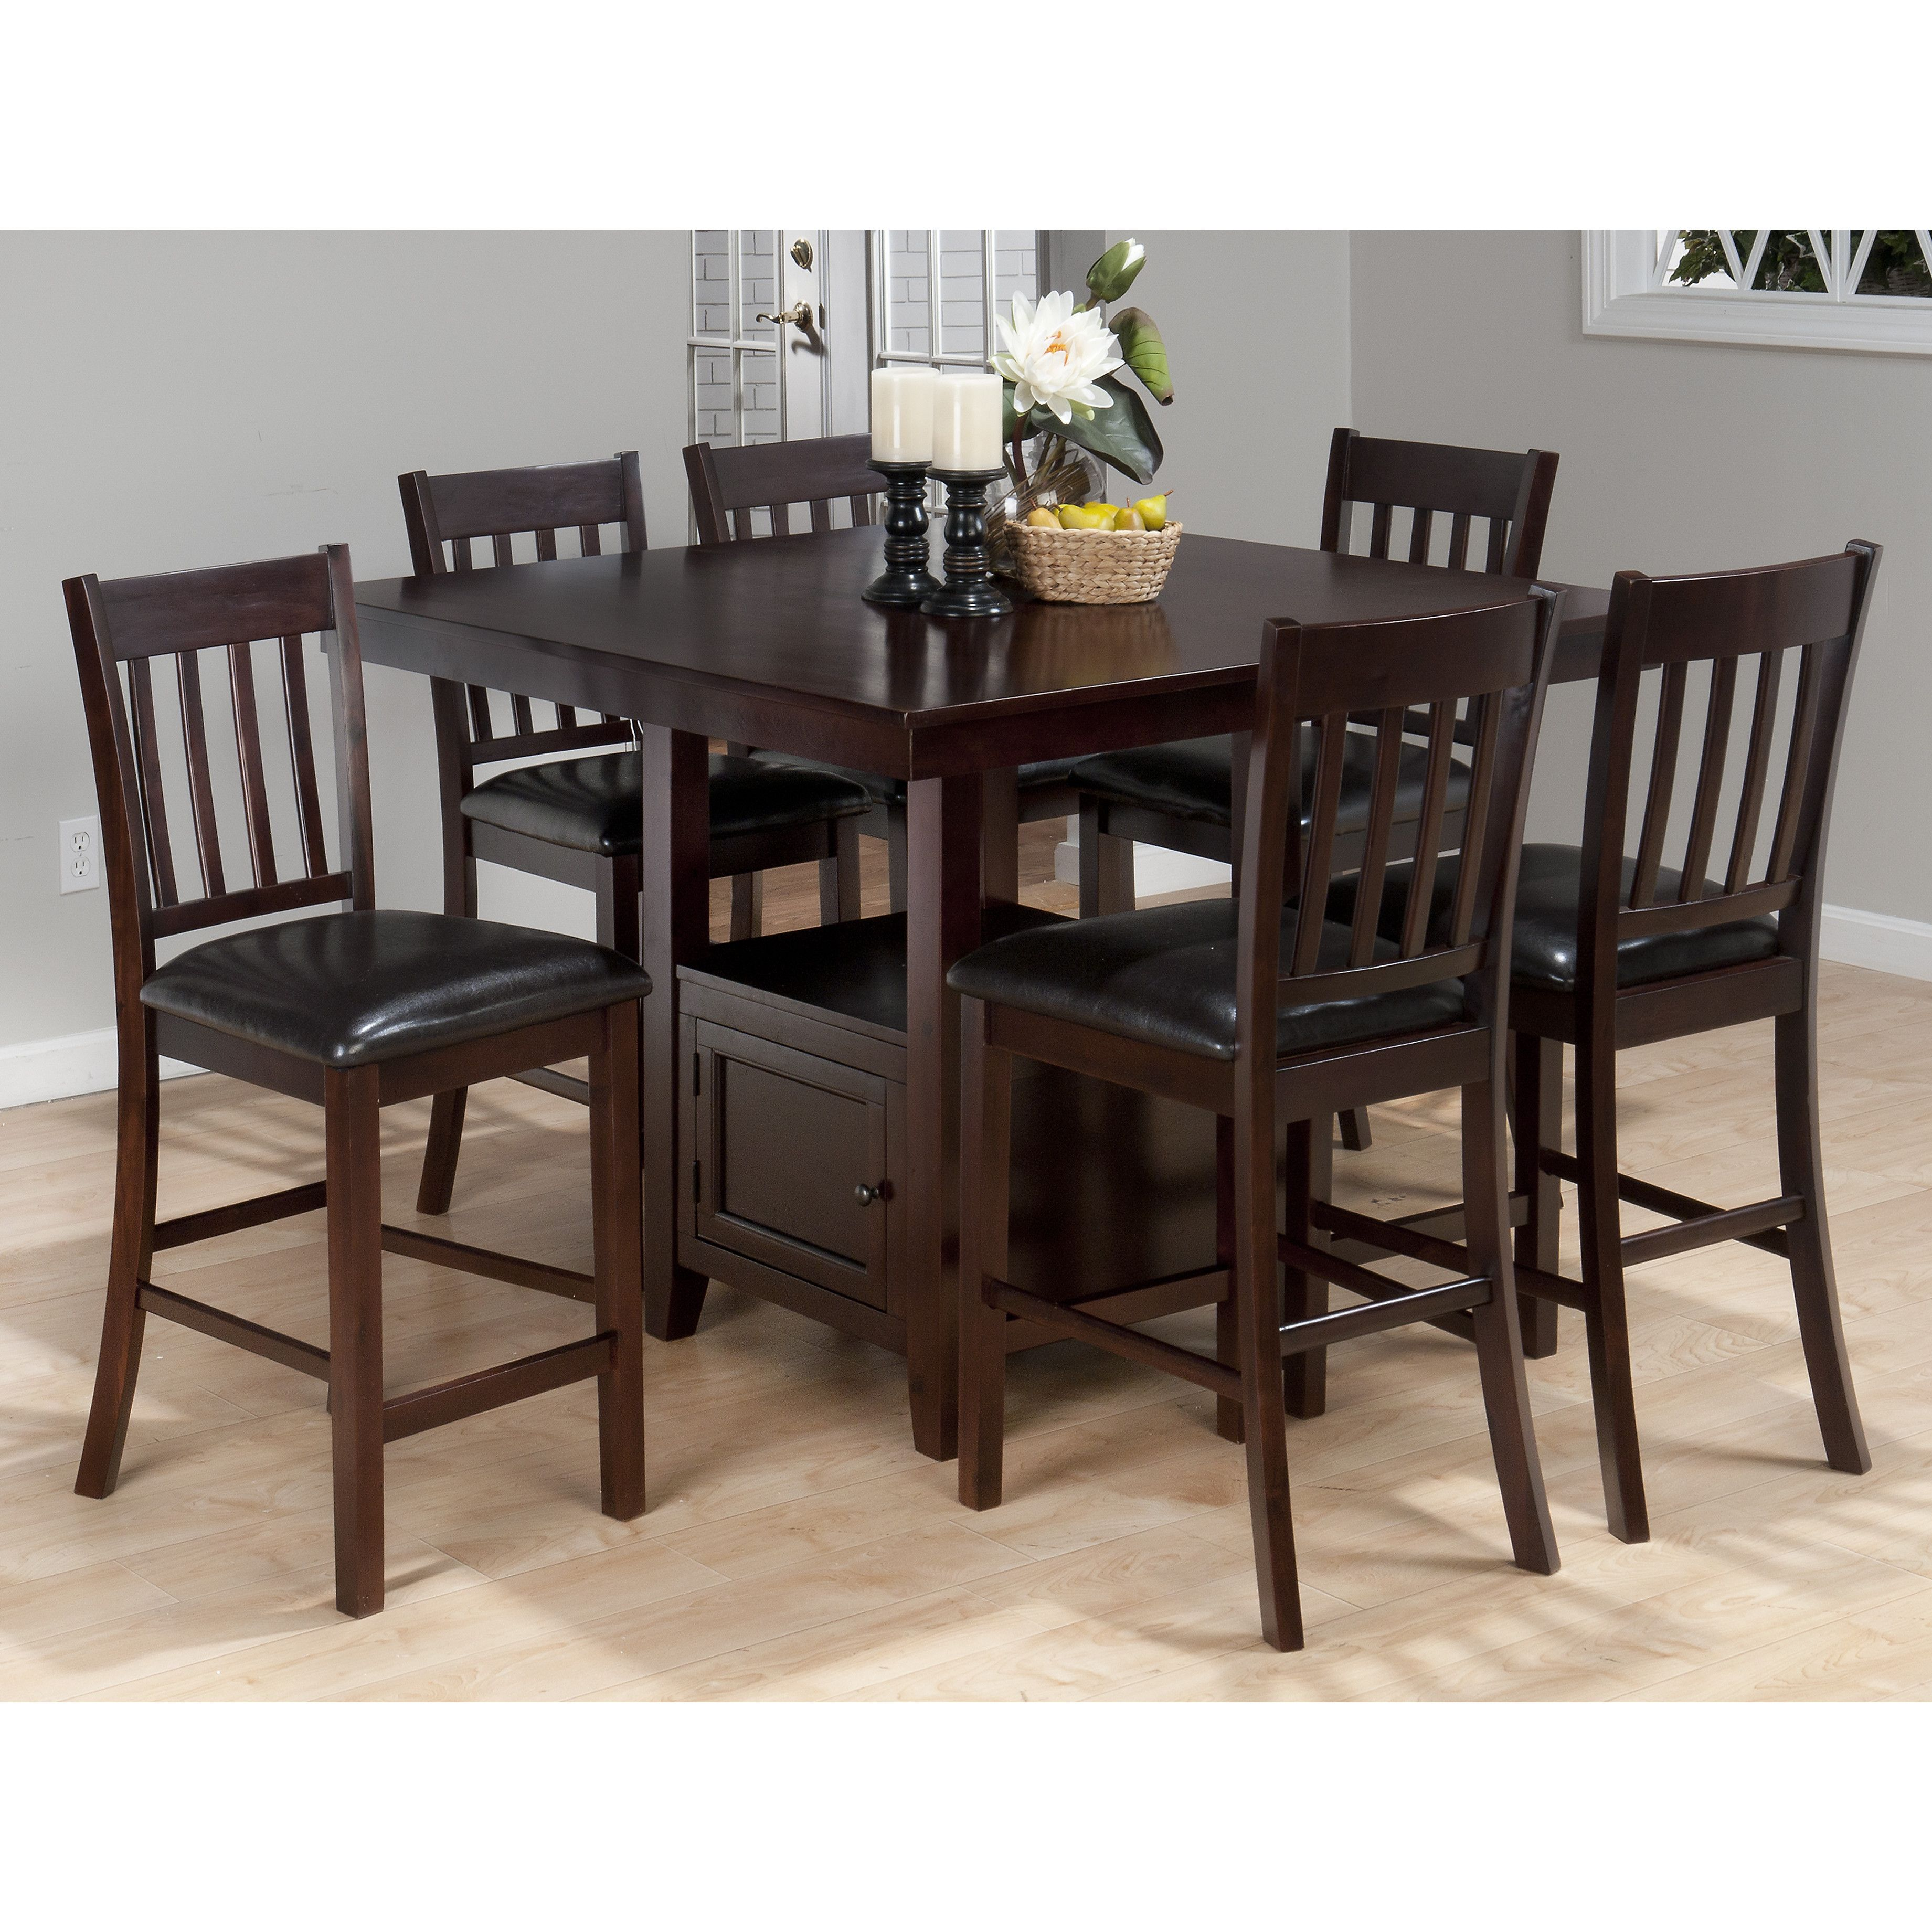 Buy Jofran Tessa Chianti Casual Counter Height Square Table And Bar Stool Set From National Furniture Supply At Lowest Price Great Service